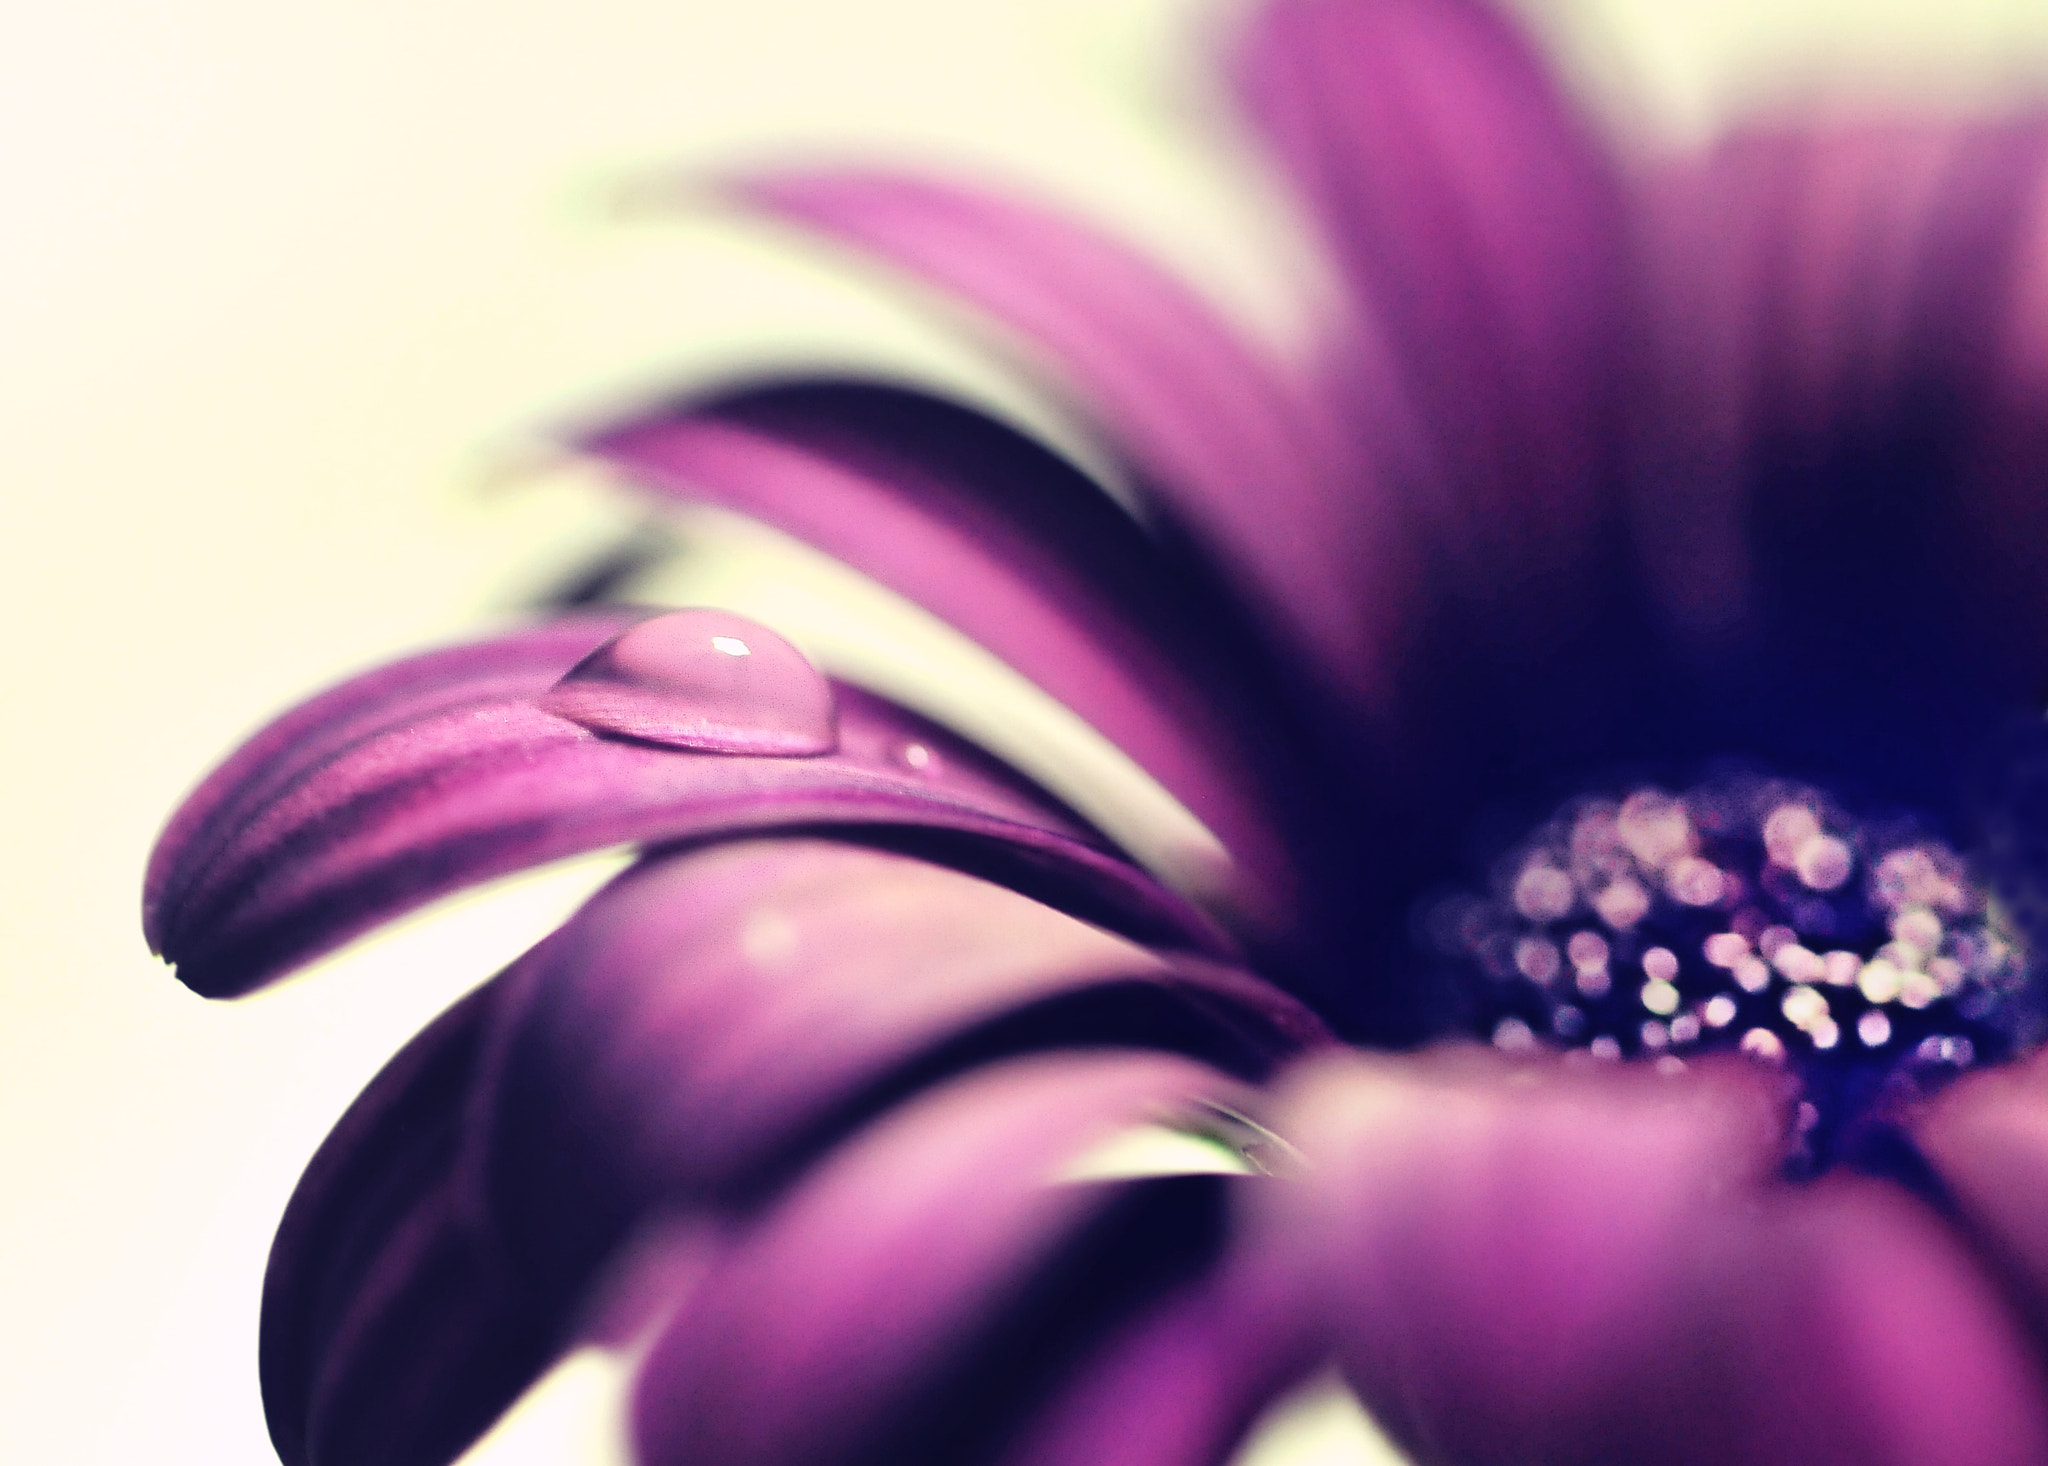 Photograph On the purple stage by y2- hiro on 500px